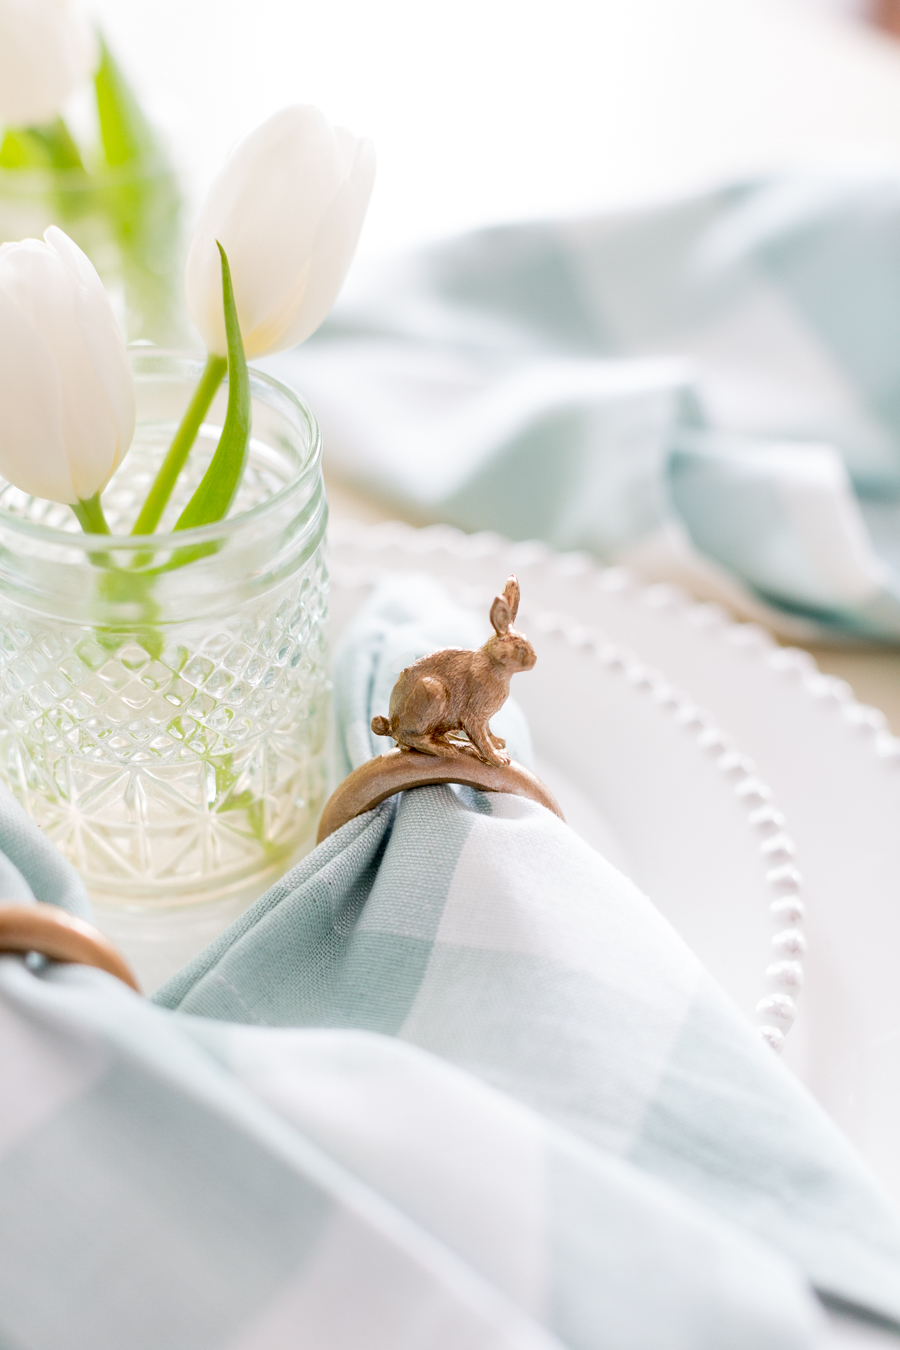 Diy easter bunny napkin ring easter bunny napkin ring diy craftberrybush 4 solutioingenieria Images